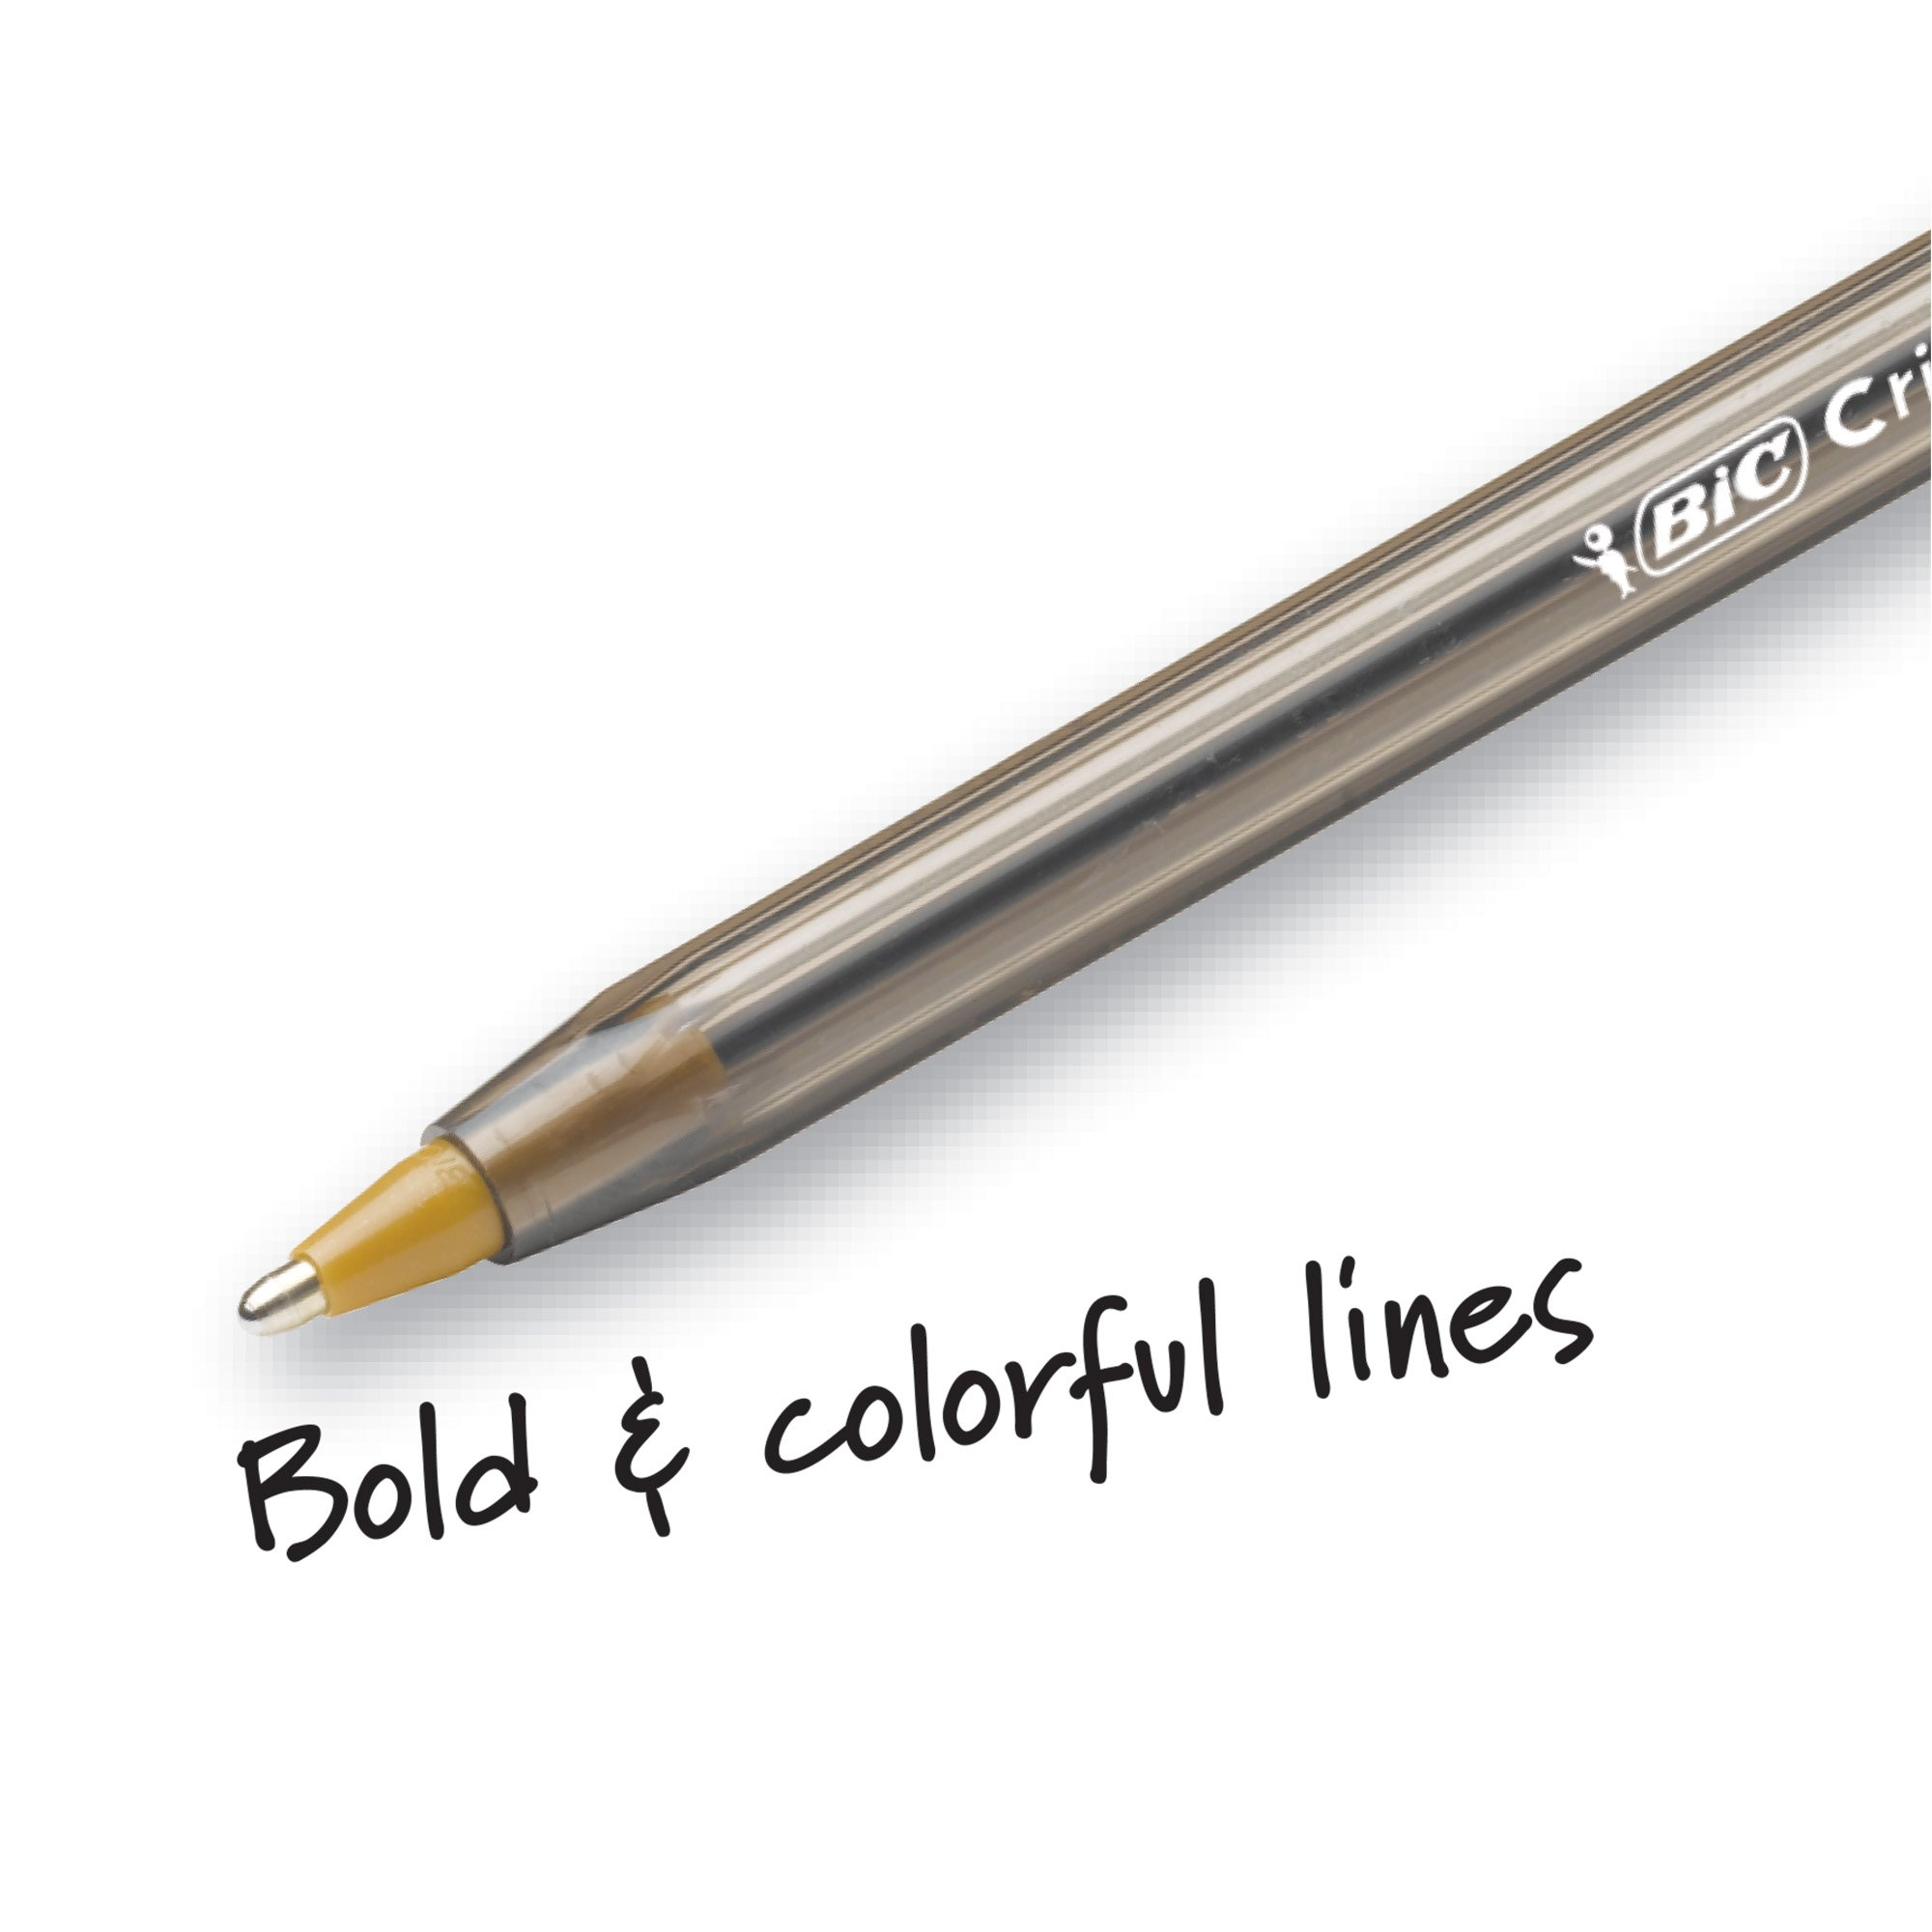 BIC MSBAPP241-A-AST Cristal Xtra Bold Fashion Ballpoint Pen, Bold Point (1.6mm), Assorted Colors, 24-Count by BIC (Image #2)